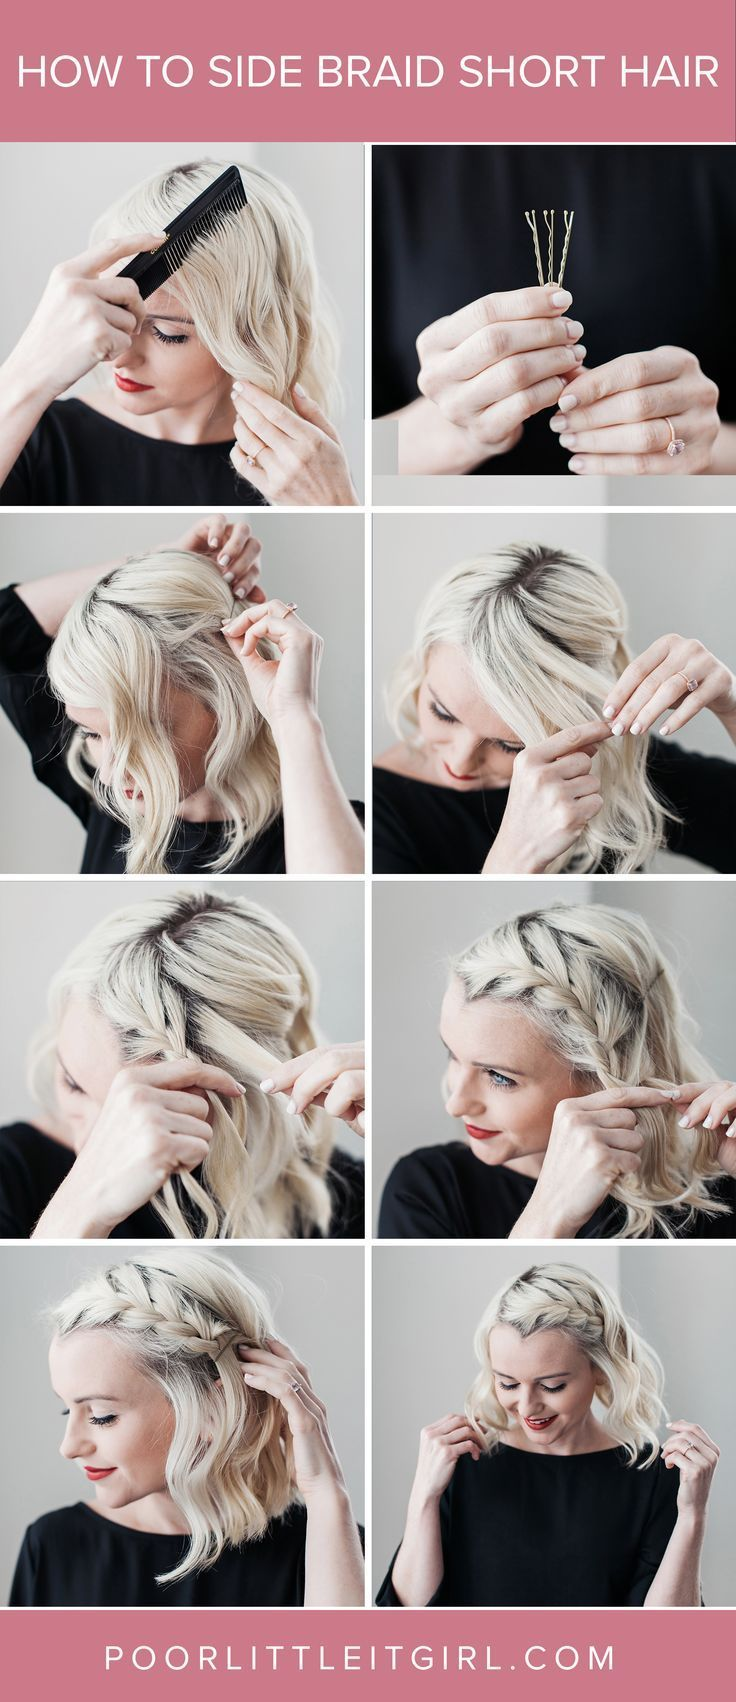 How To Side Braid Kurzes Haar - Haar Tutorial - Braid - Armes kleines Mädchen - Frisuren